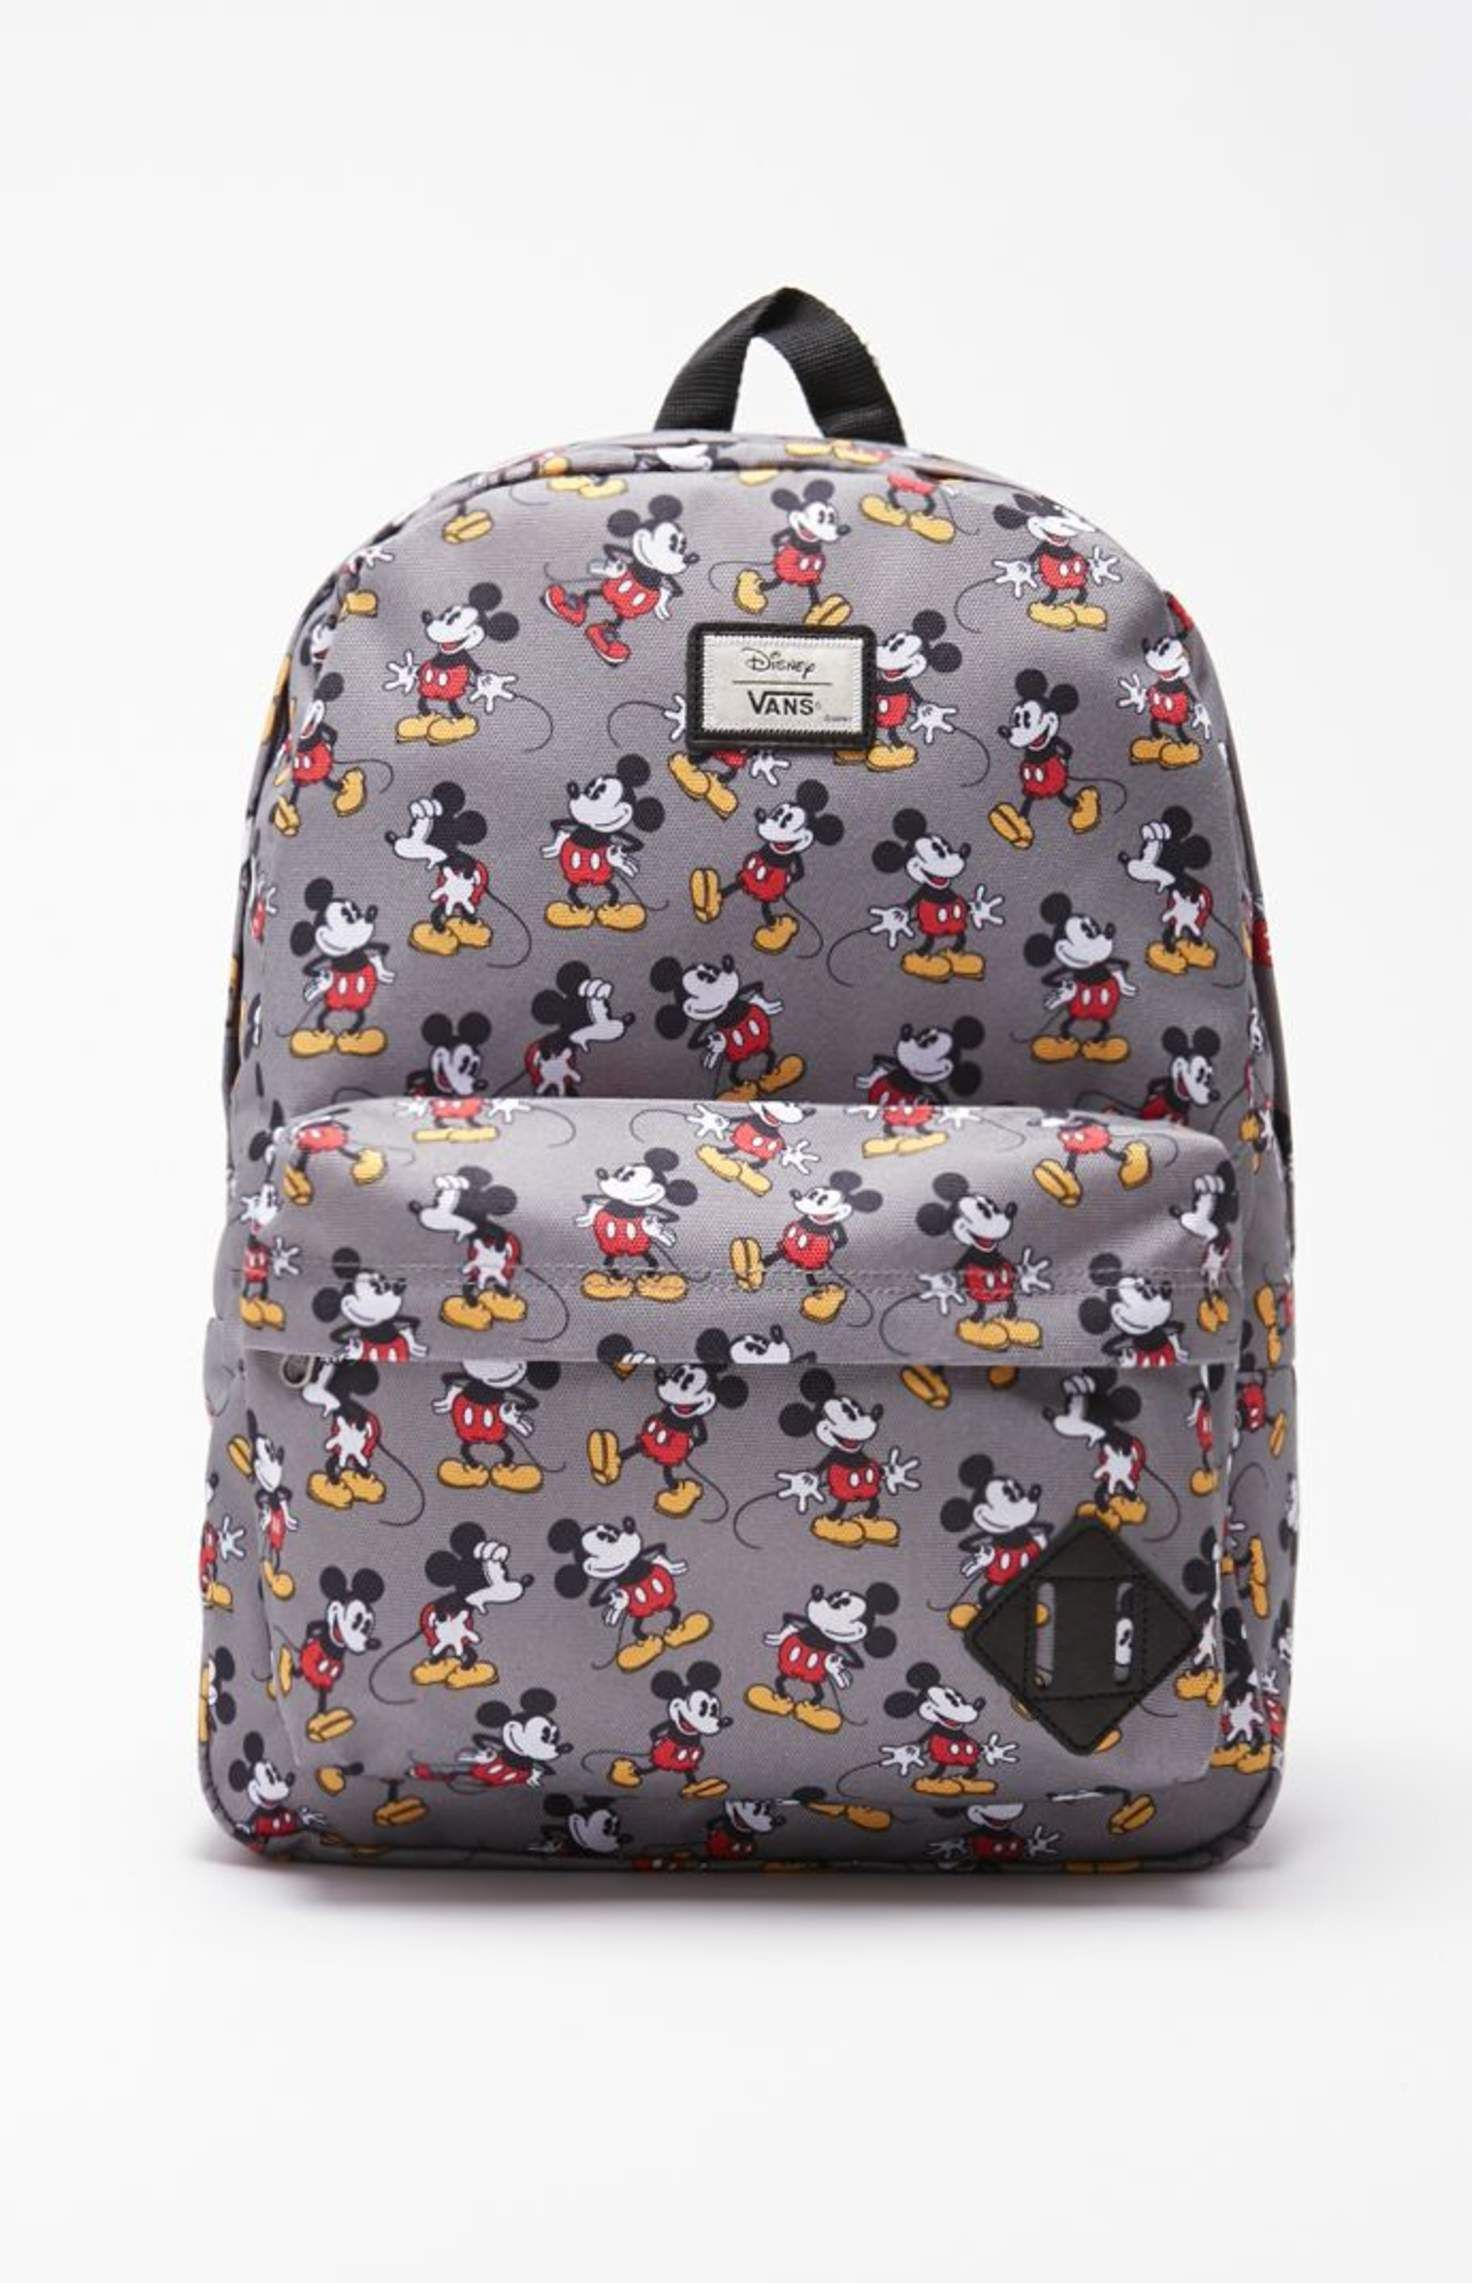 Vans - Disney Old Skool II Mickey Mouse School Backpack - Mens Backpacks -  Gray - NOSZ fe20ad6cd83